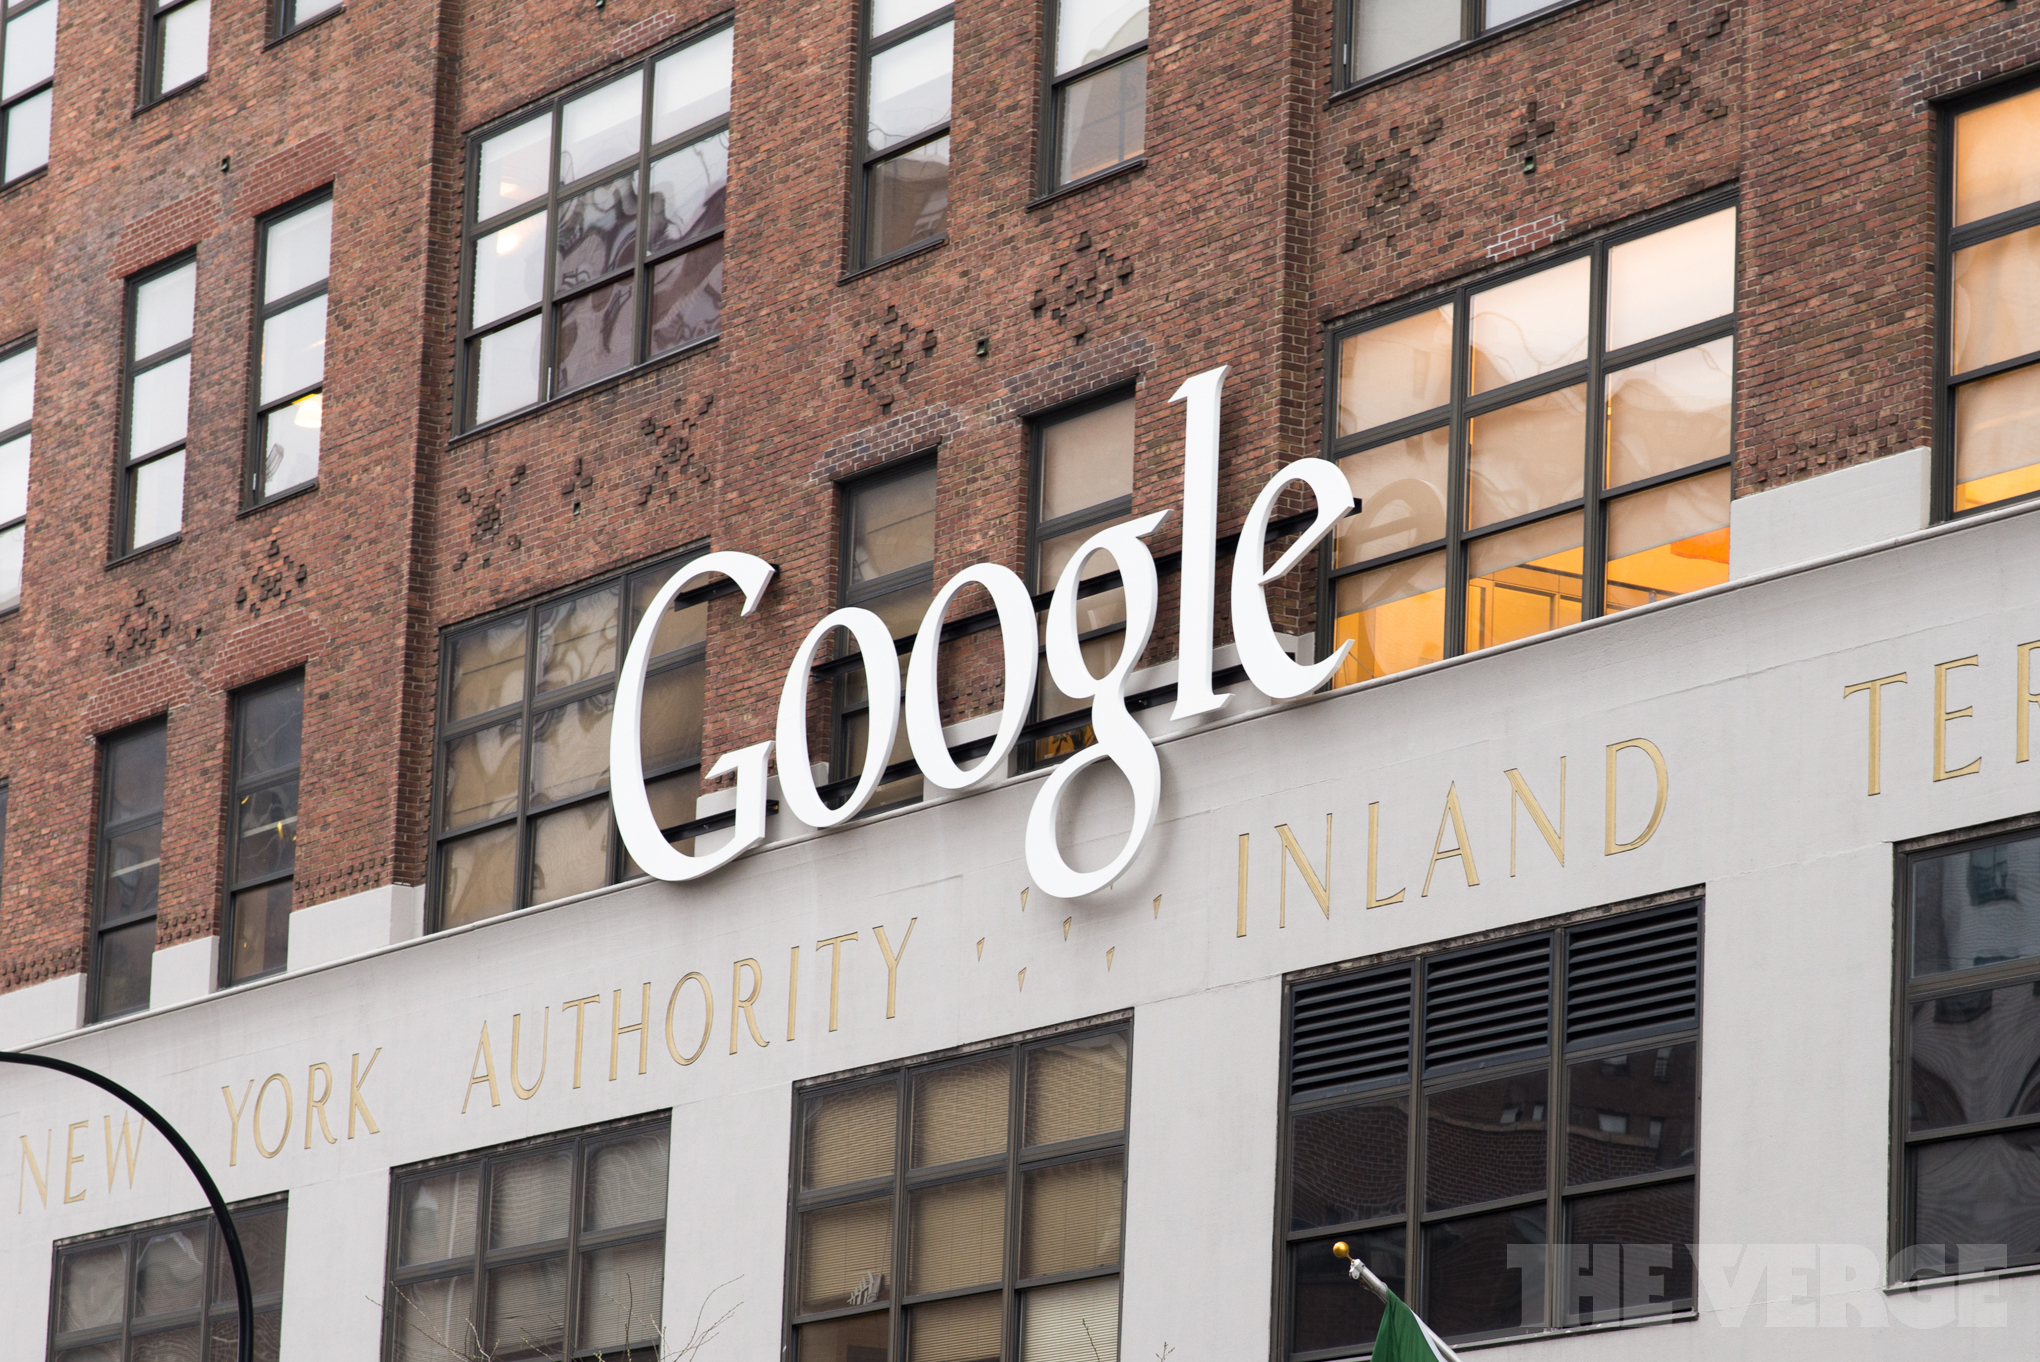 Google's 'Don't be evil' creed disappears as company morphs into Alphabet